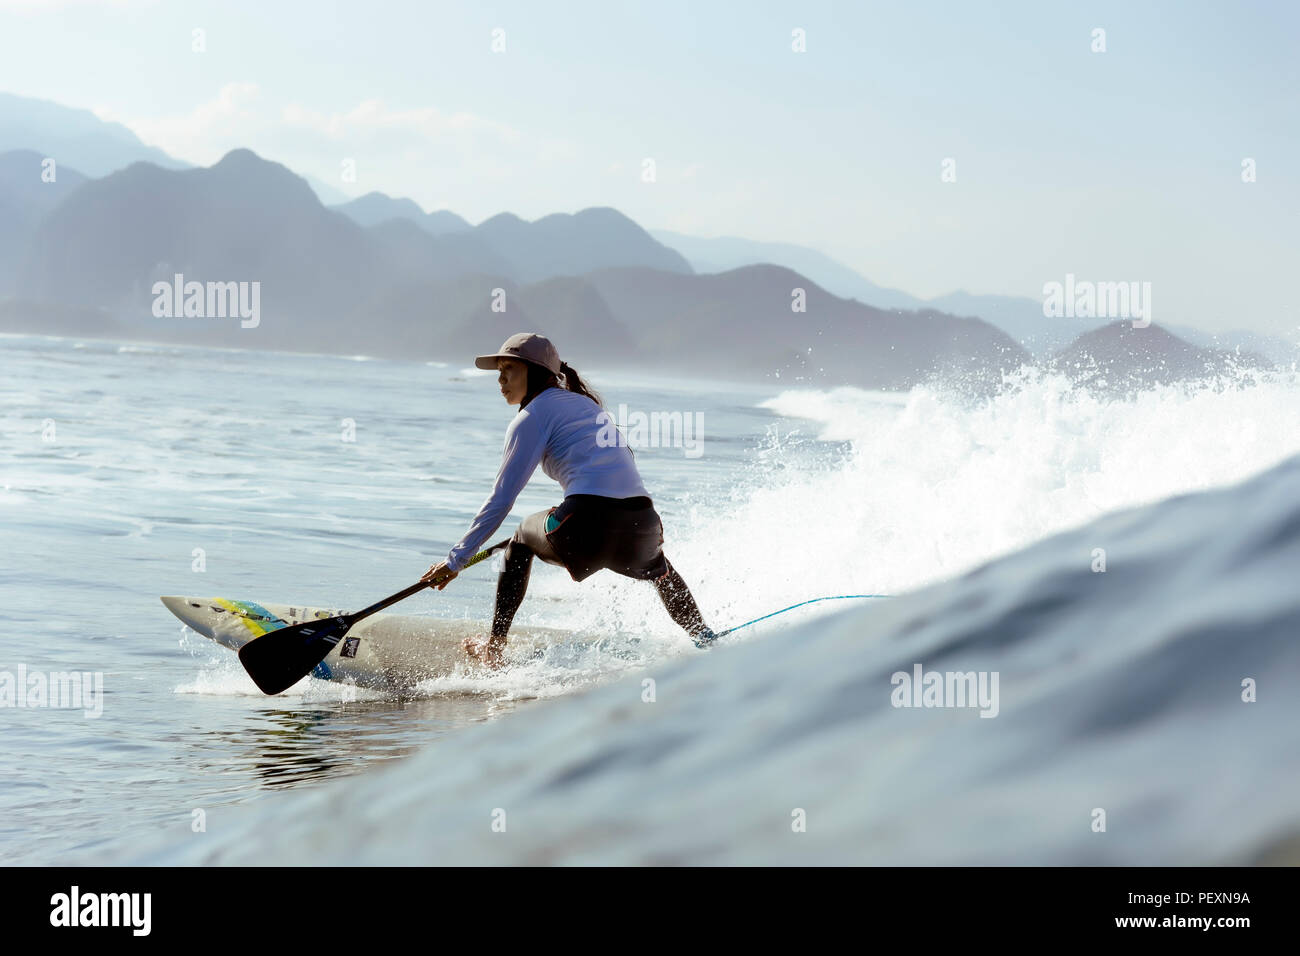 Donna paddle surf in mare Foto Stock